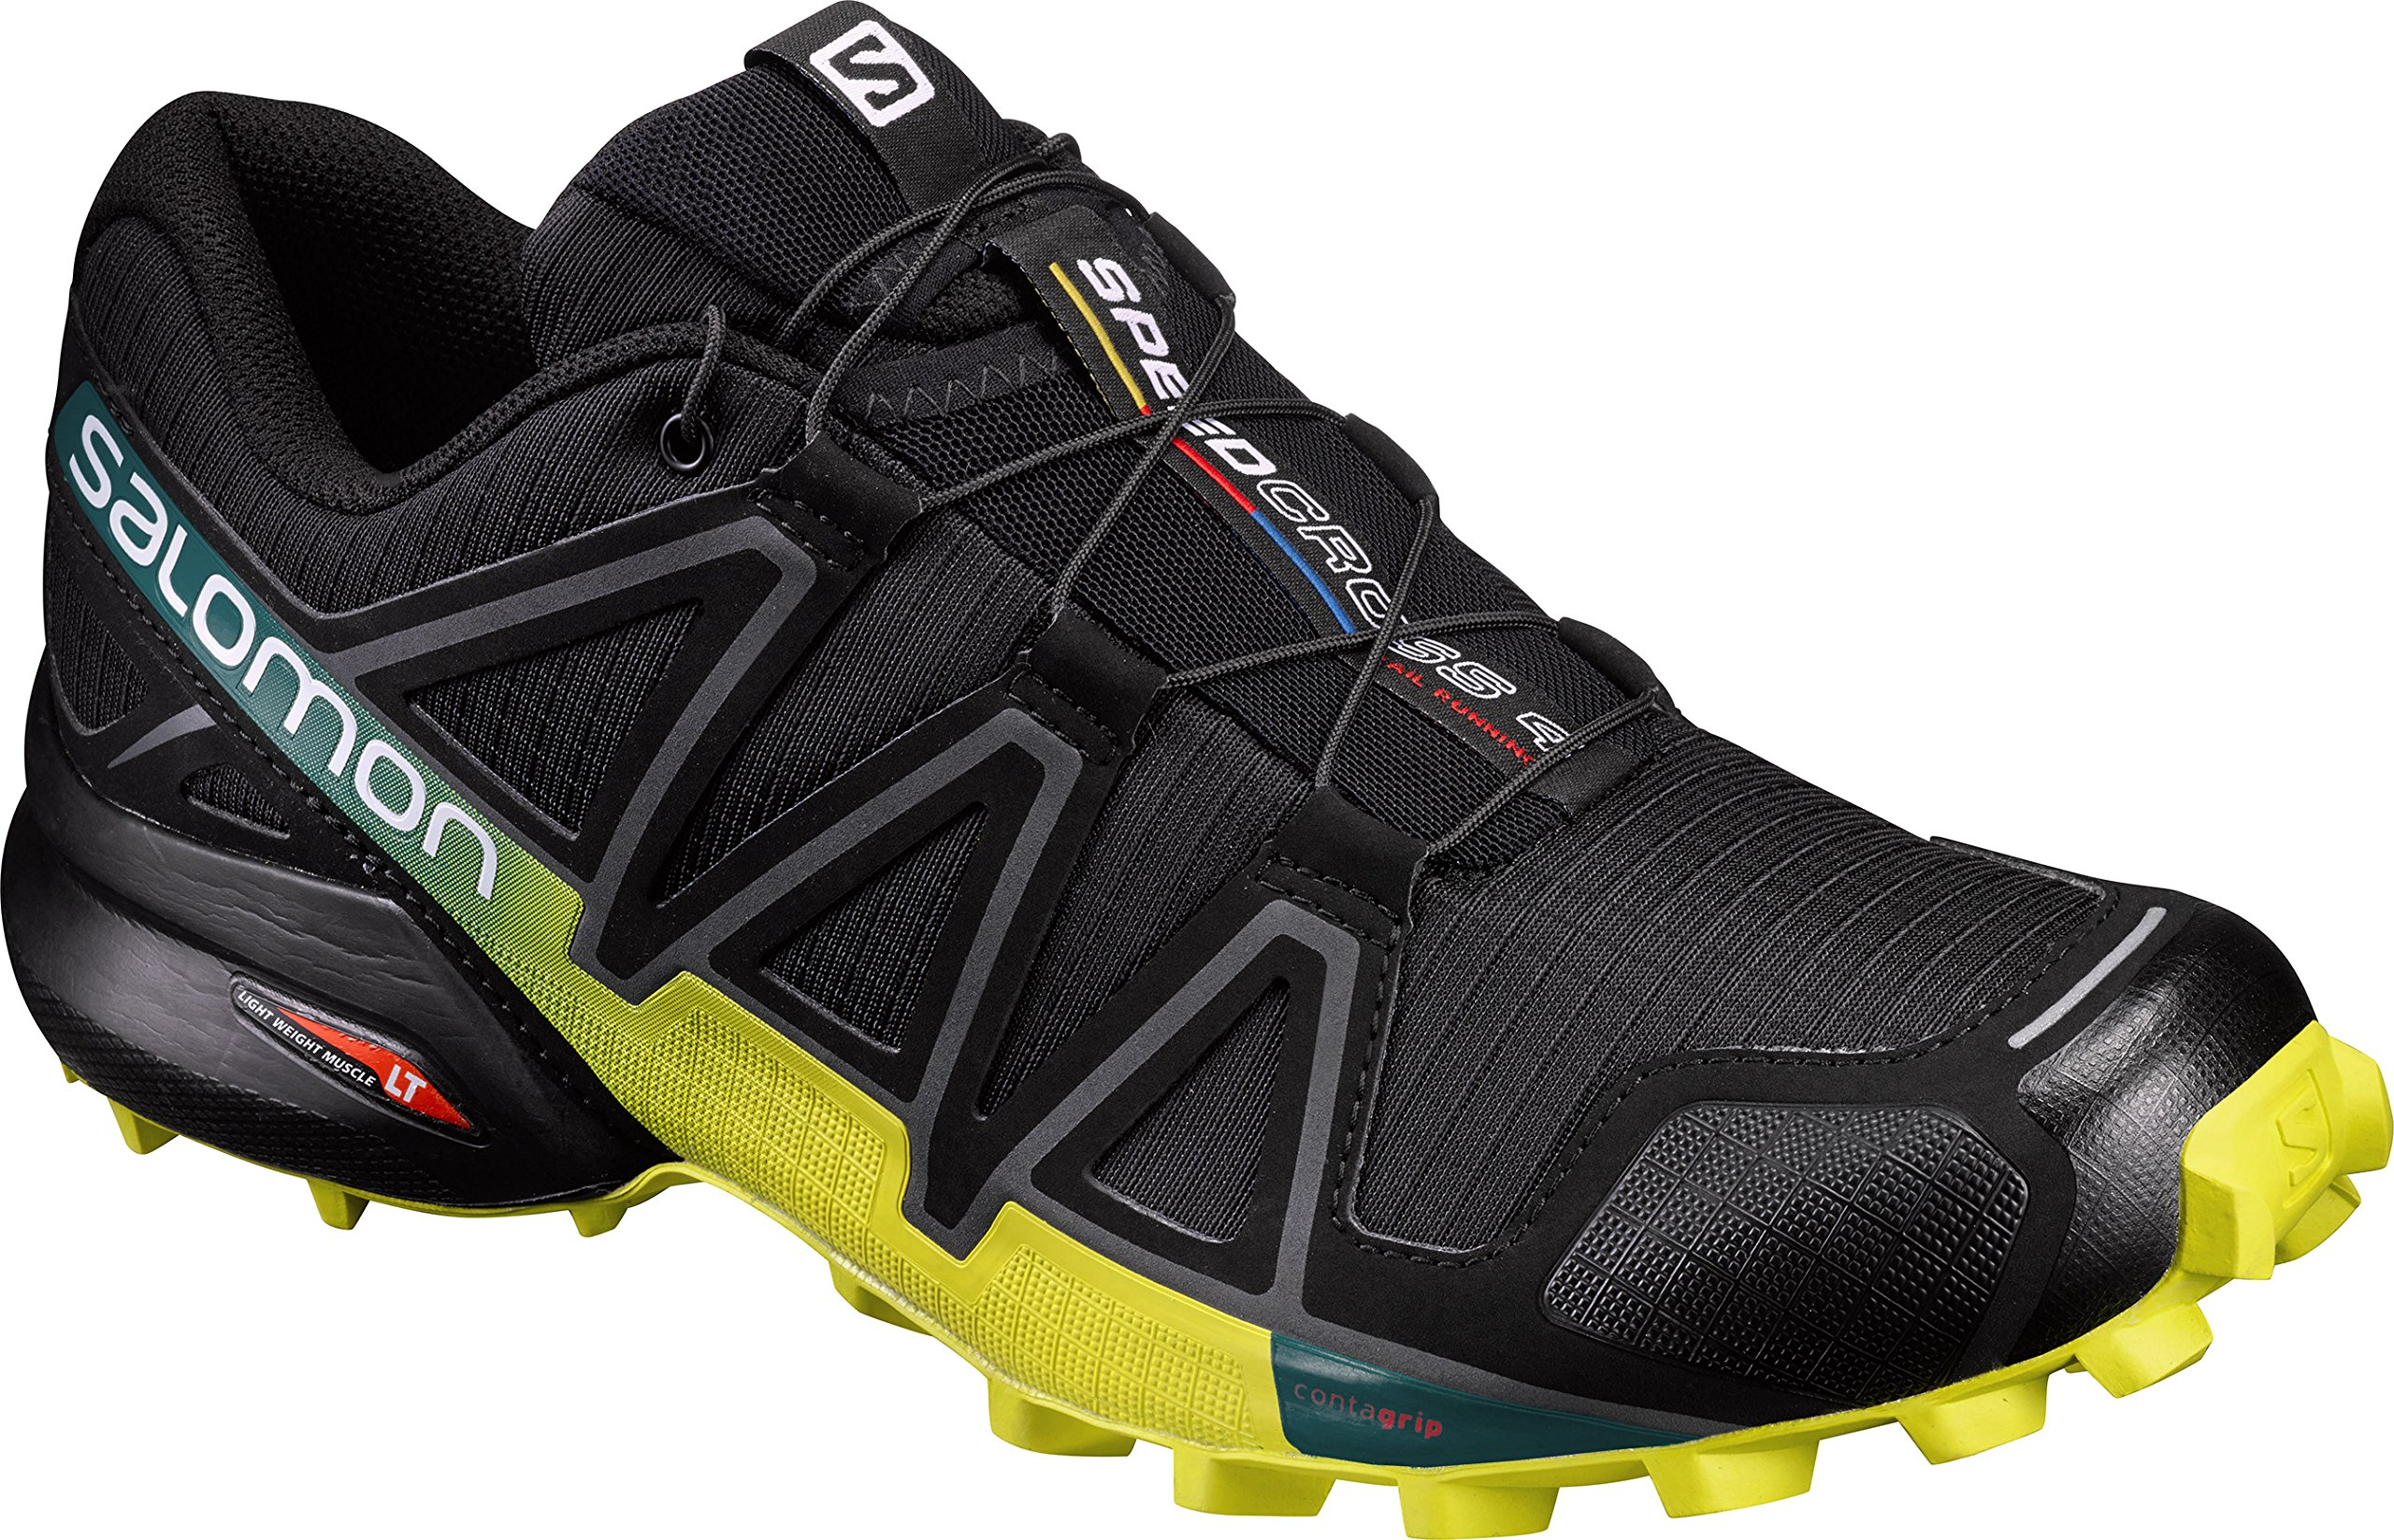 Salomon Men's Speedcross 4 Trail Runner, Black/Everglade/Sulphur, 10.5 M US by SALOMON